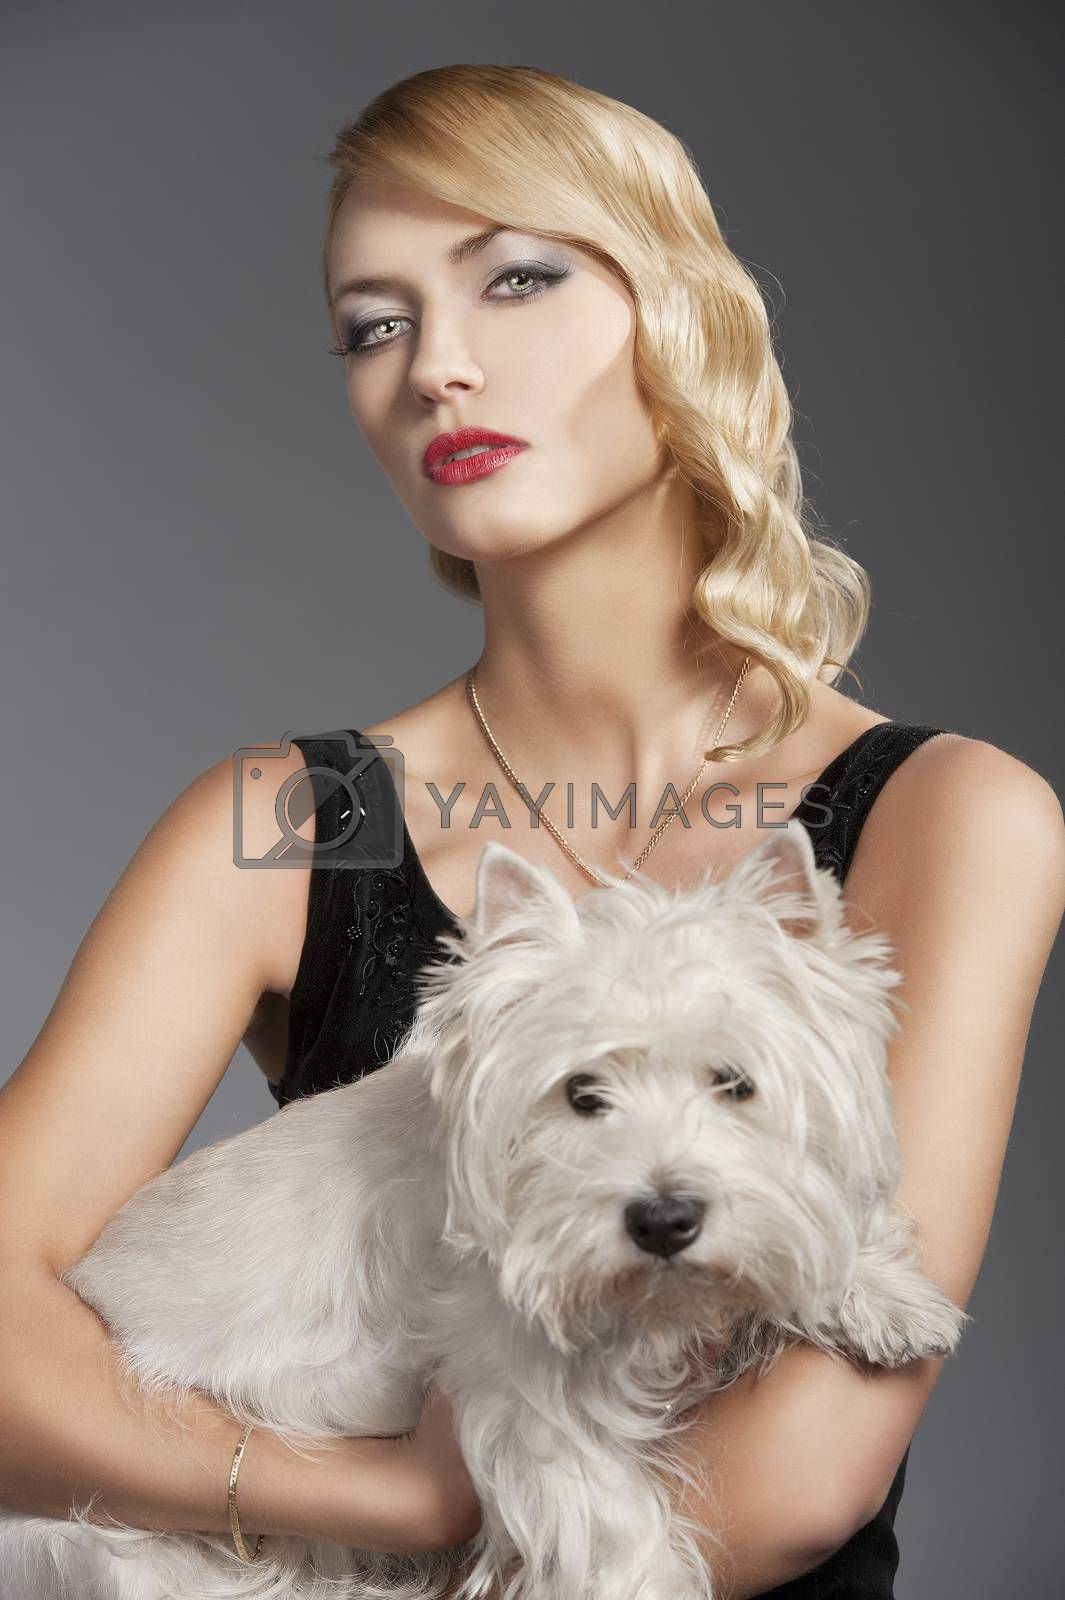 Royalty free image of old fashion blond girl, with dog  by fotoCD